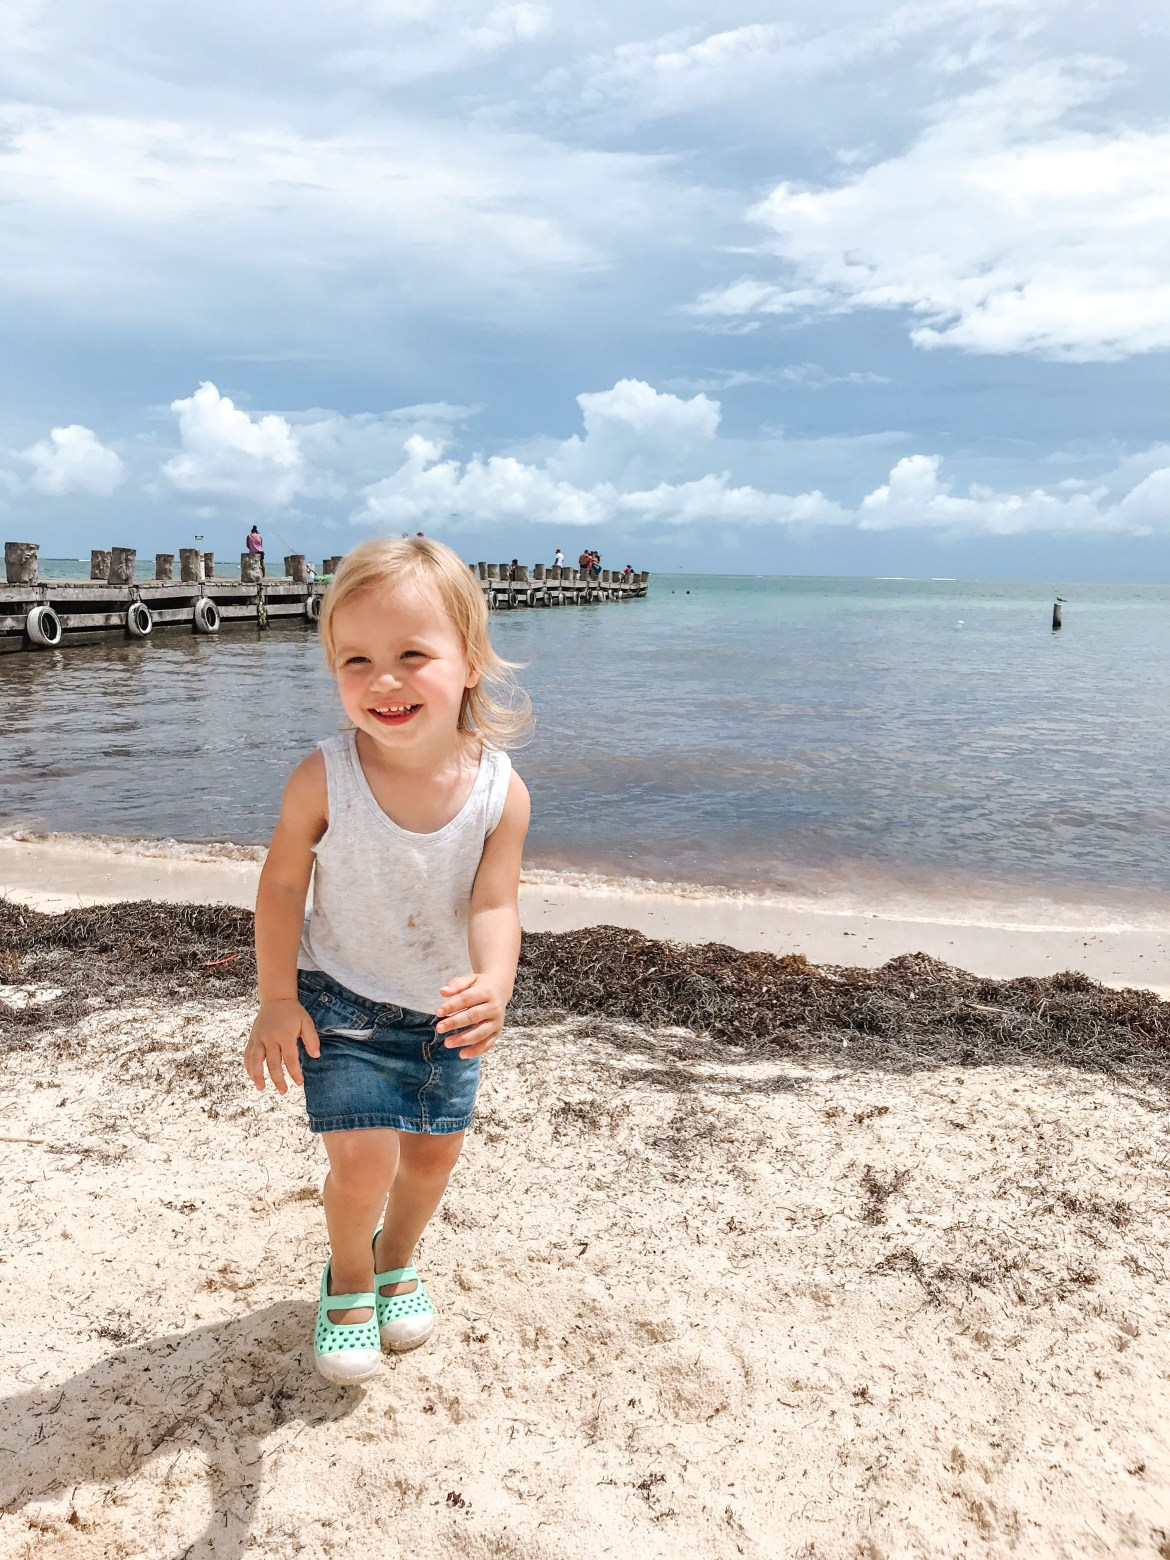 Things to do in Puerto Morelos Mexico. A young girl stands on a white sand beach at Mexico's Puerto Morelos, South of Cancún along the Riviera Maya.  The sun shines over the turquoise-blue waters of the Caribbean Sea and a pier juts out into the water.